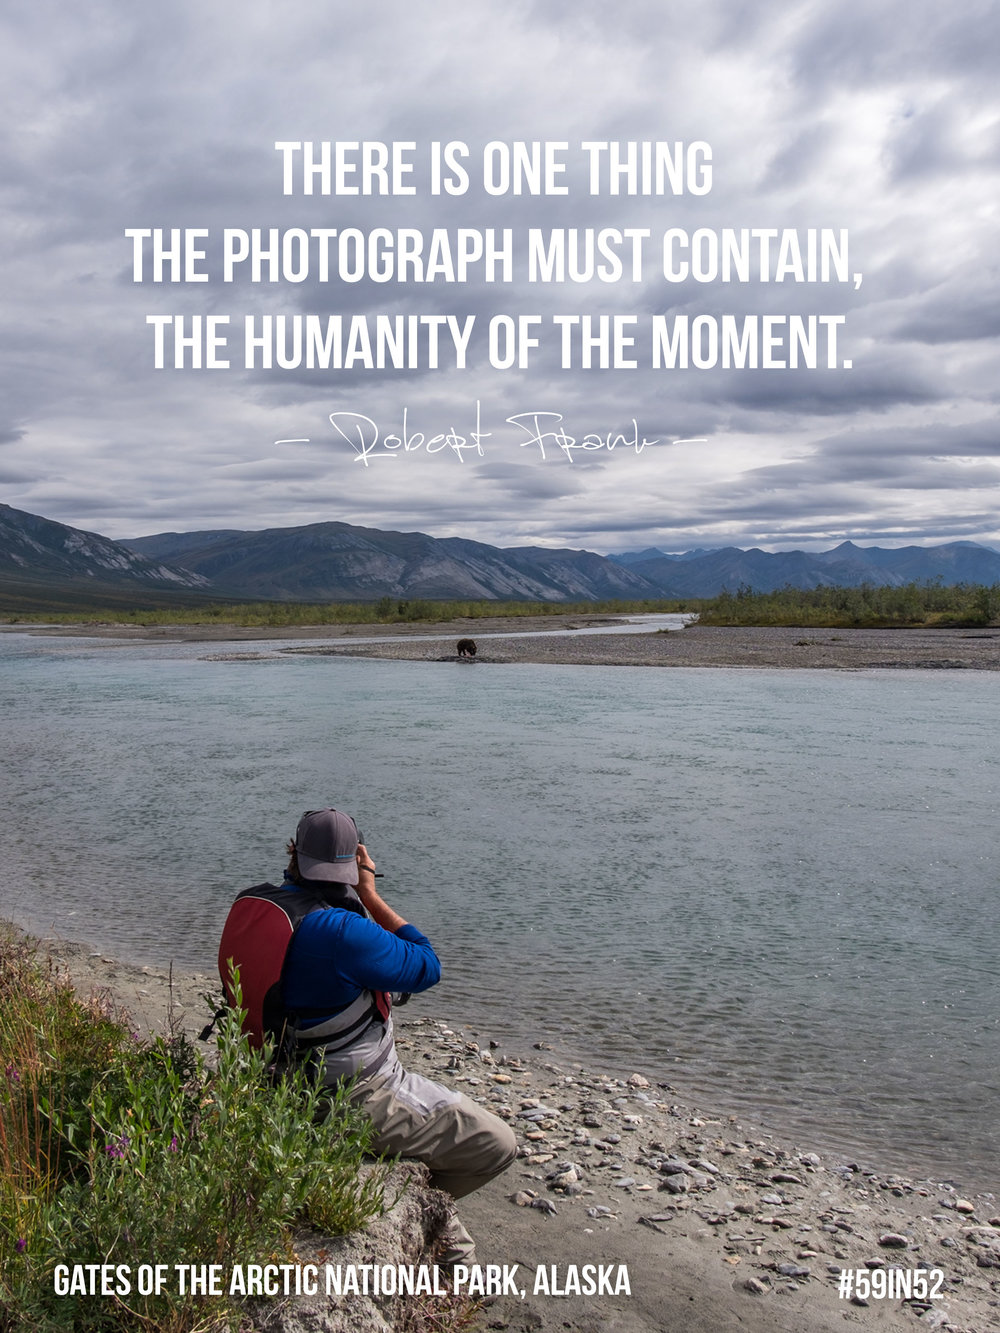 """There is one thing the photograph must contain, the humanity of the moment."" - Robert Frank"